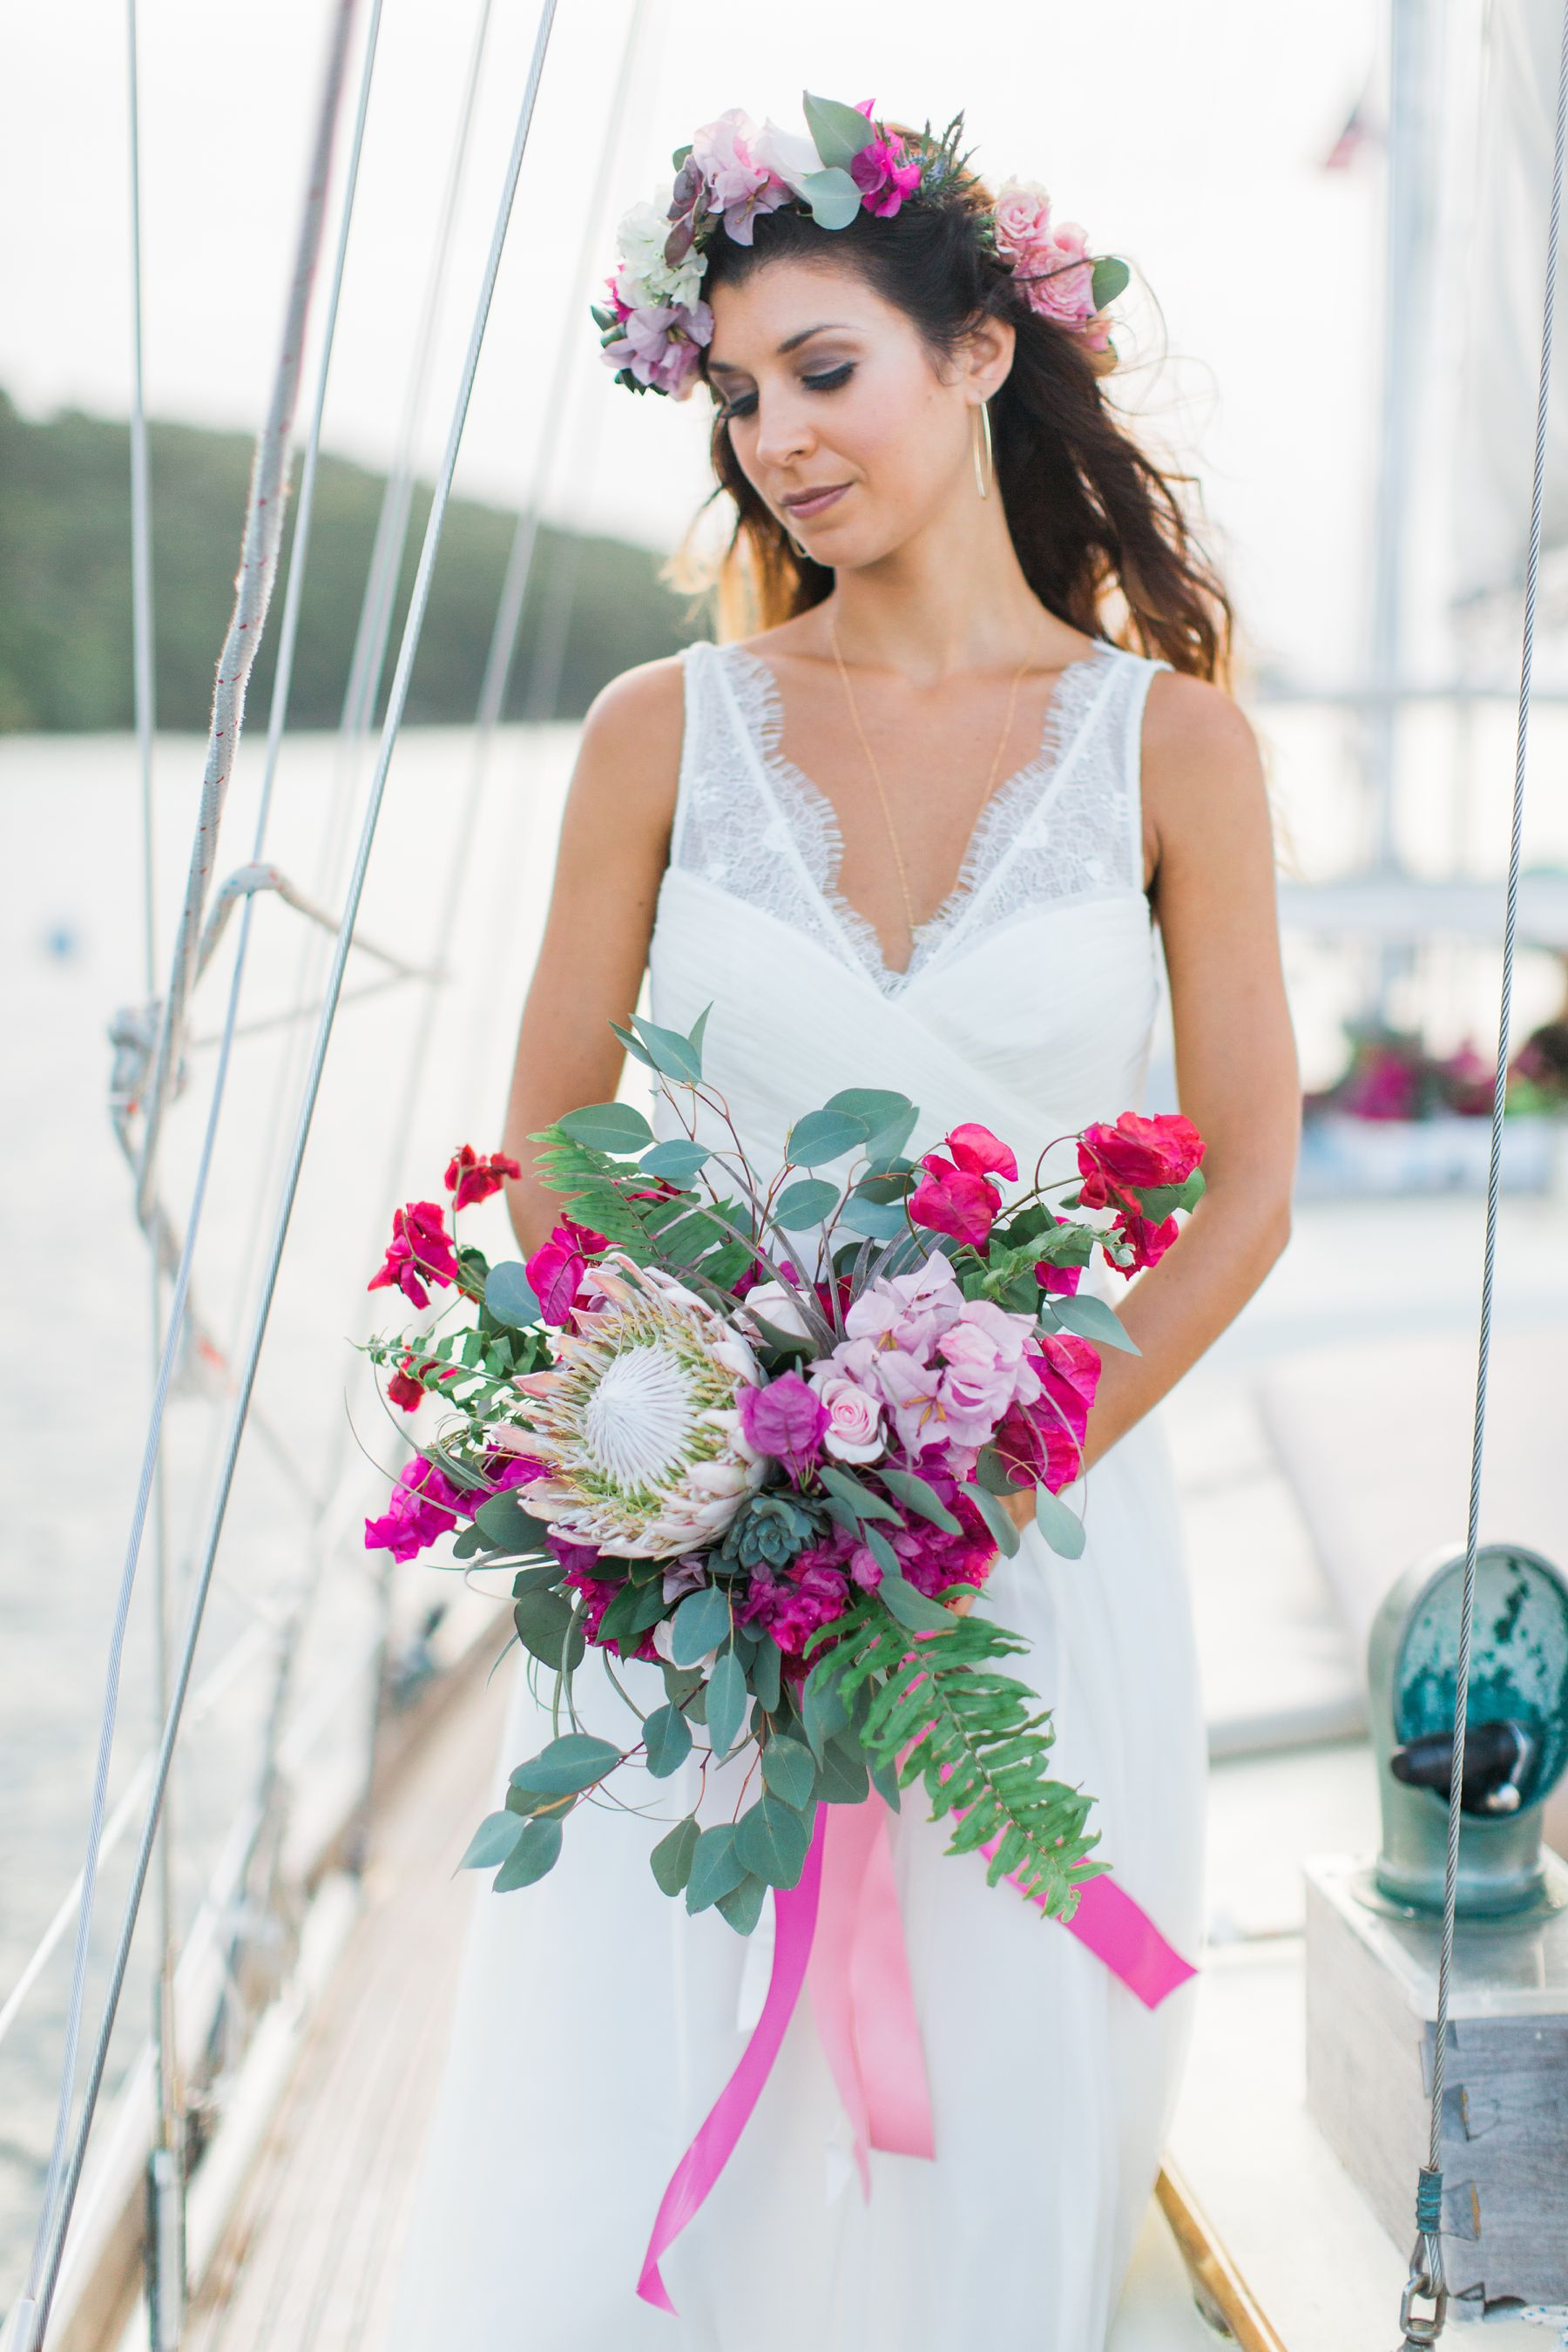 DESTINATION-WEDDING-SAIL-BOAT-ELOPEMENT-VIRGIN-ISLANDS-ST-JOHN-SAVANAH-LOFTUS_0004.jpg